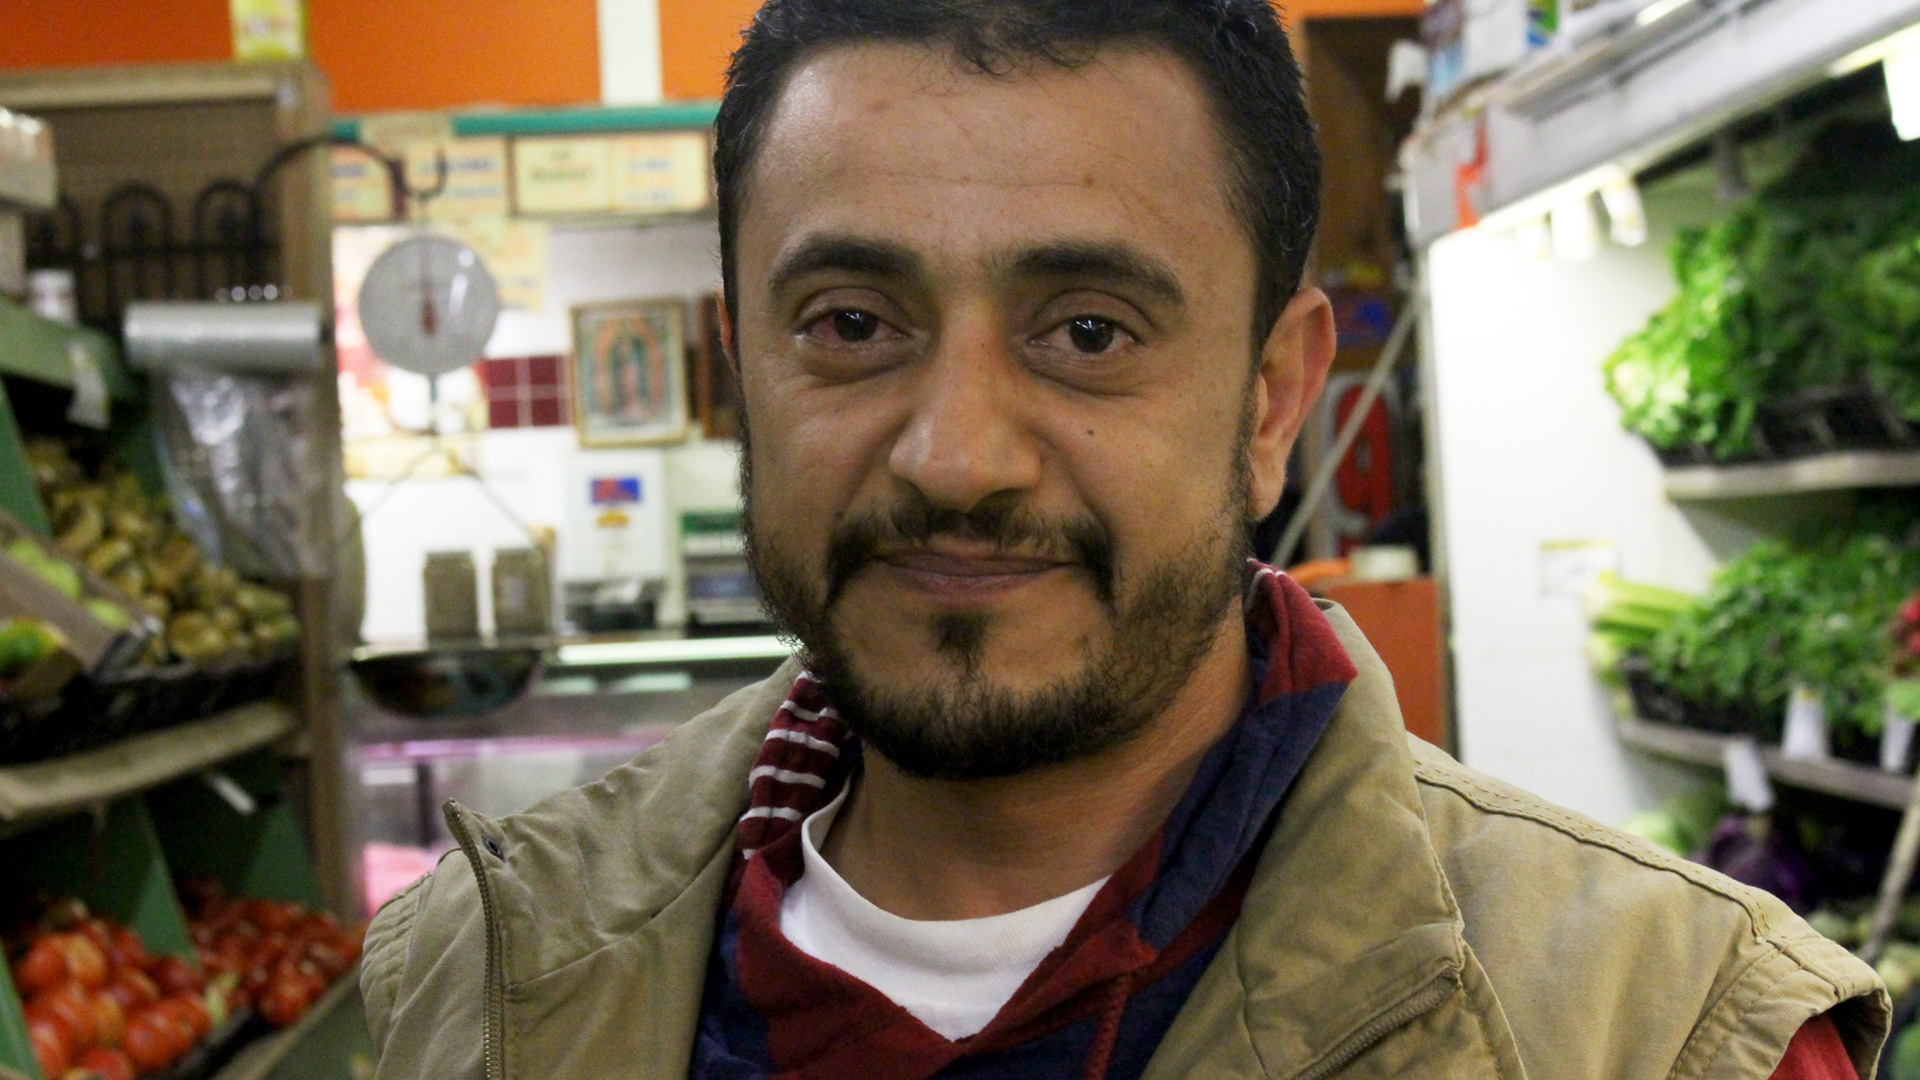 Travel Ban Dashes Grocer's Hopes of Getting Yemeni Family Out of Civil War